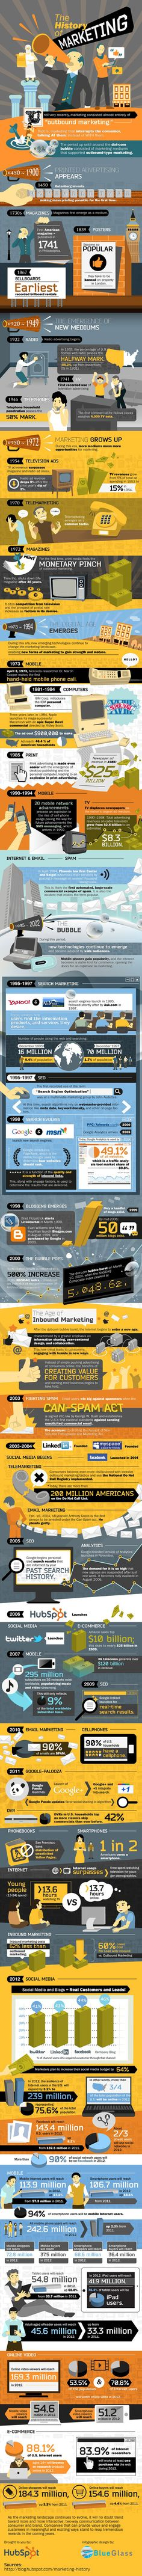 500+ years of marketing. #marketing #mobile #socialmedia #internet #ecommerce #history